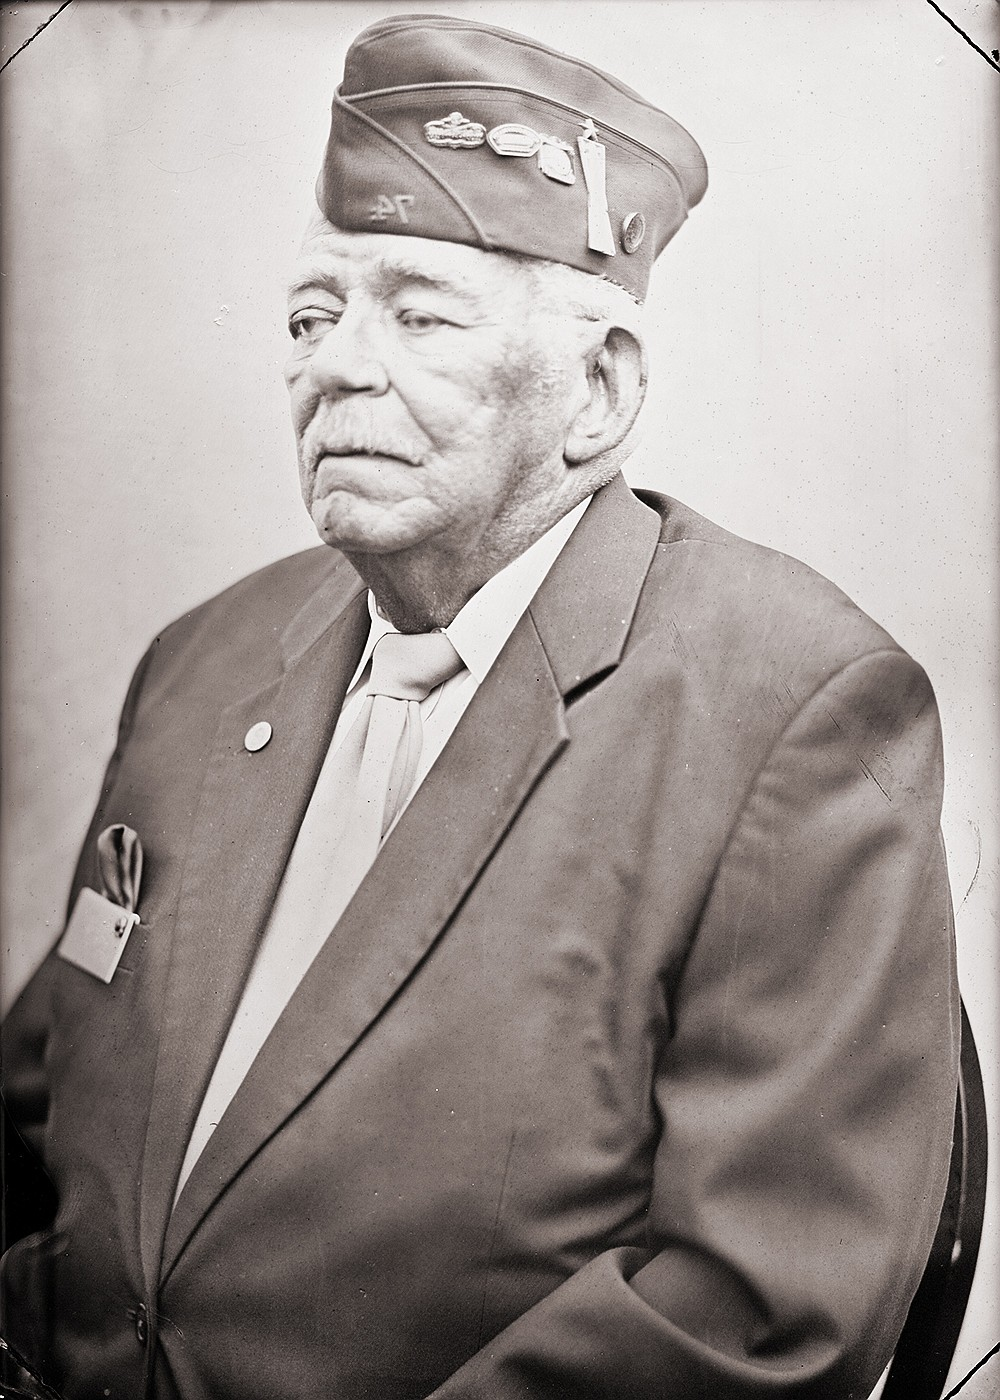 """Veterans Carl C. and Samuel W., photographed by Ed Drew for """"We Hold These Truths: American Veterans in Arkansas,"""" on display at the Mosaic Templars Cultural Center. (Special to the Democrat-Gazette)"""